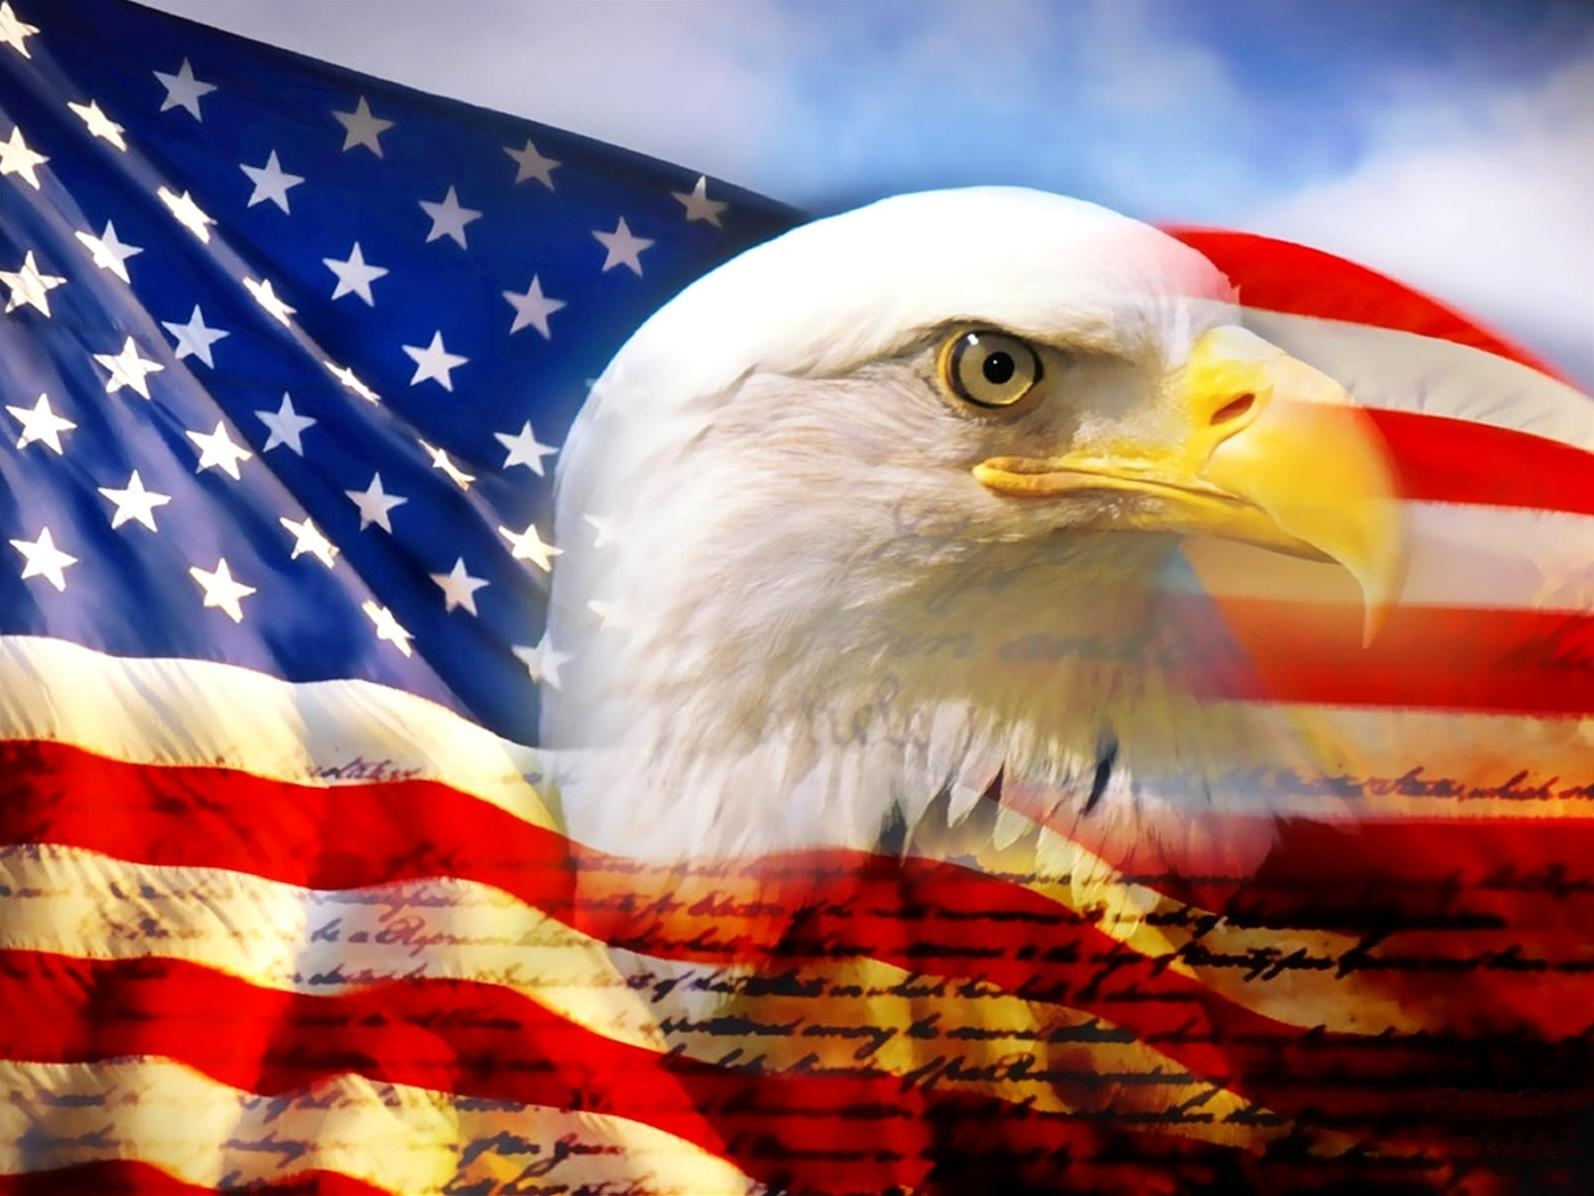 american eagle and flag pictures dowload